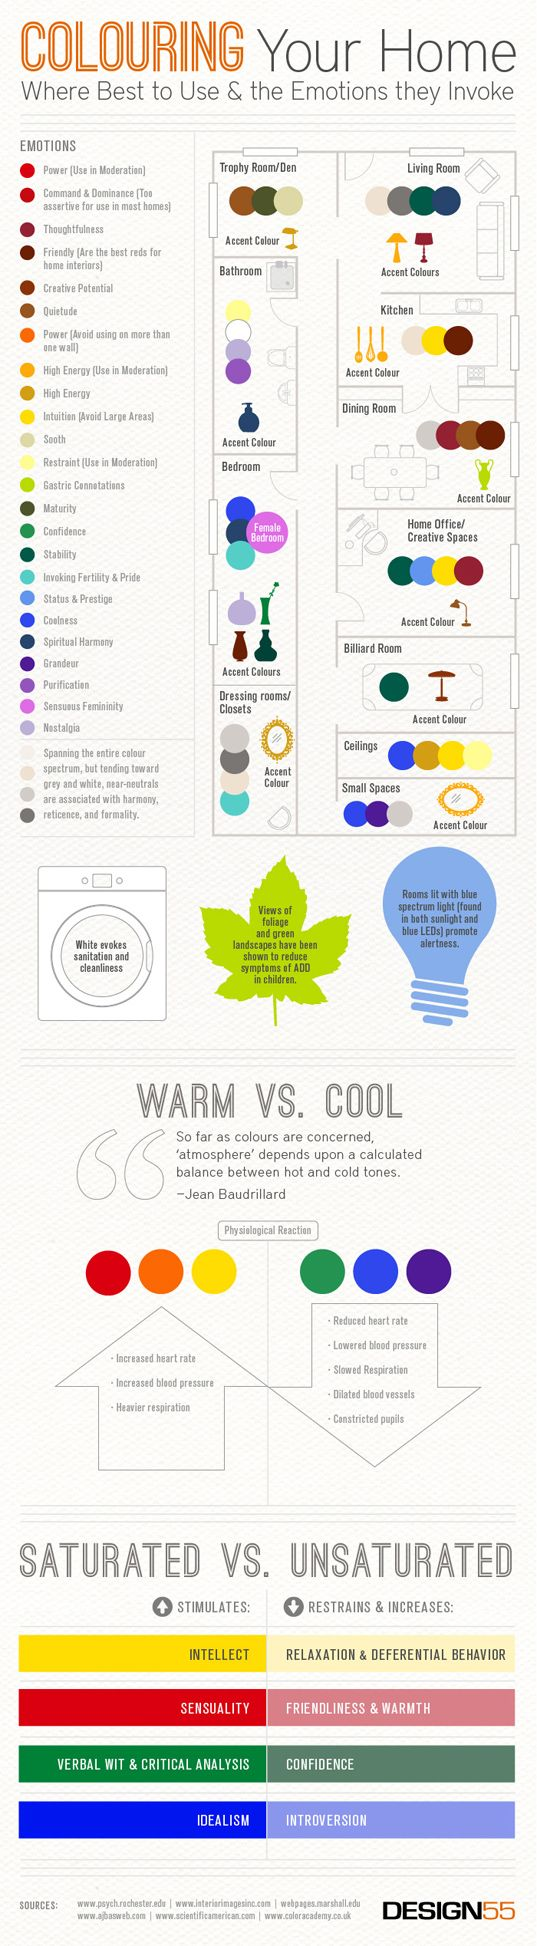 INFOGRAPHIC: How Interior Color Choice Can Evoke Moods in Your Home